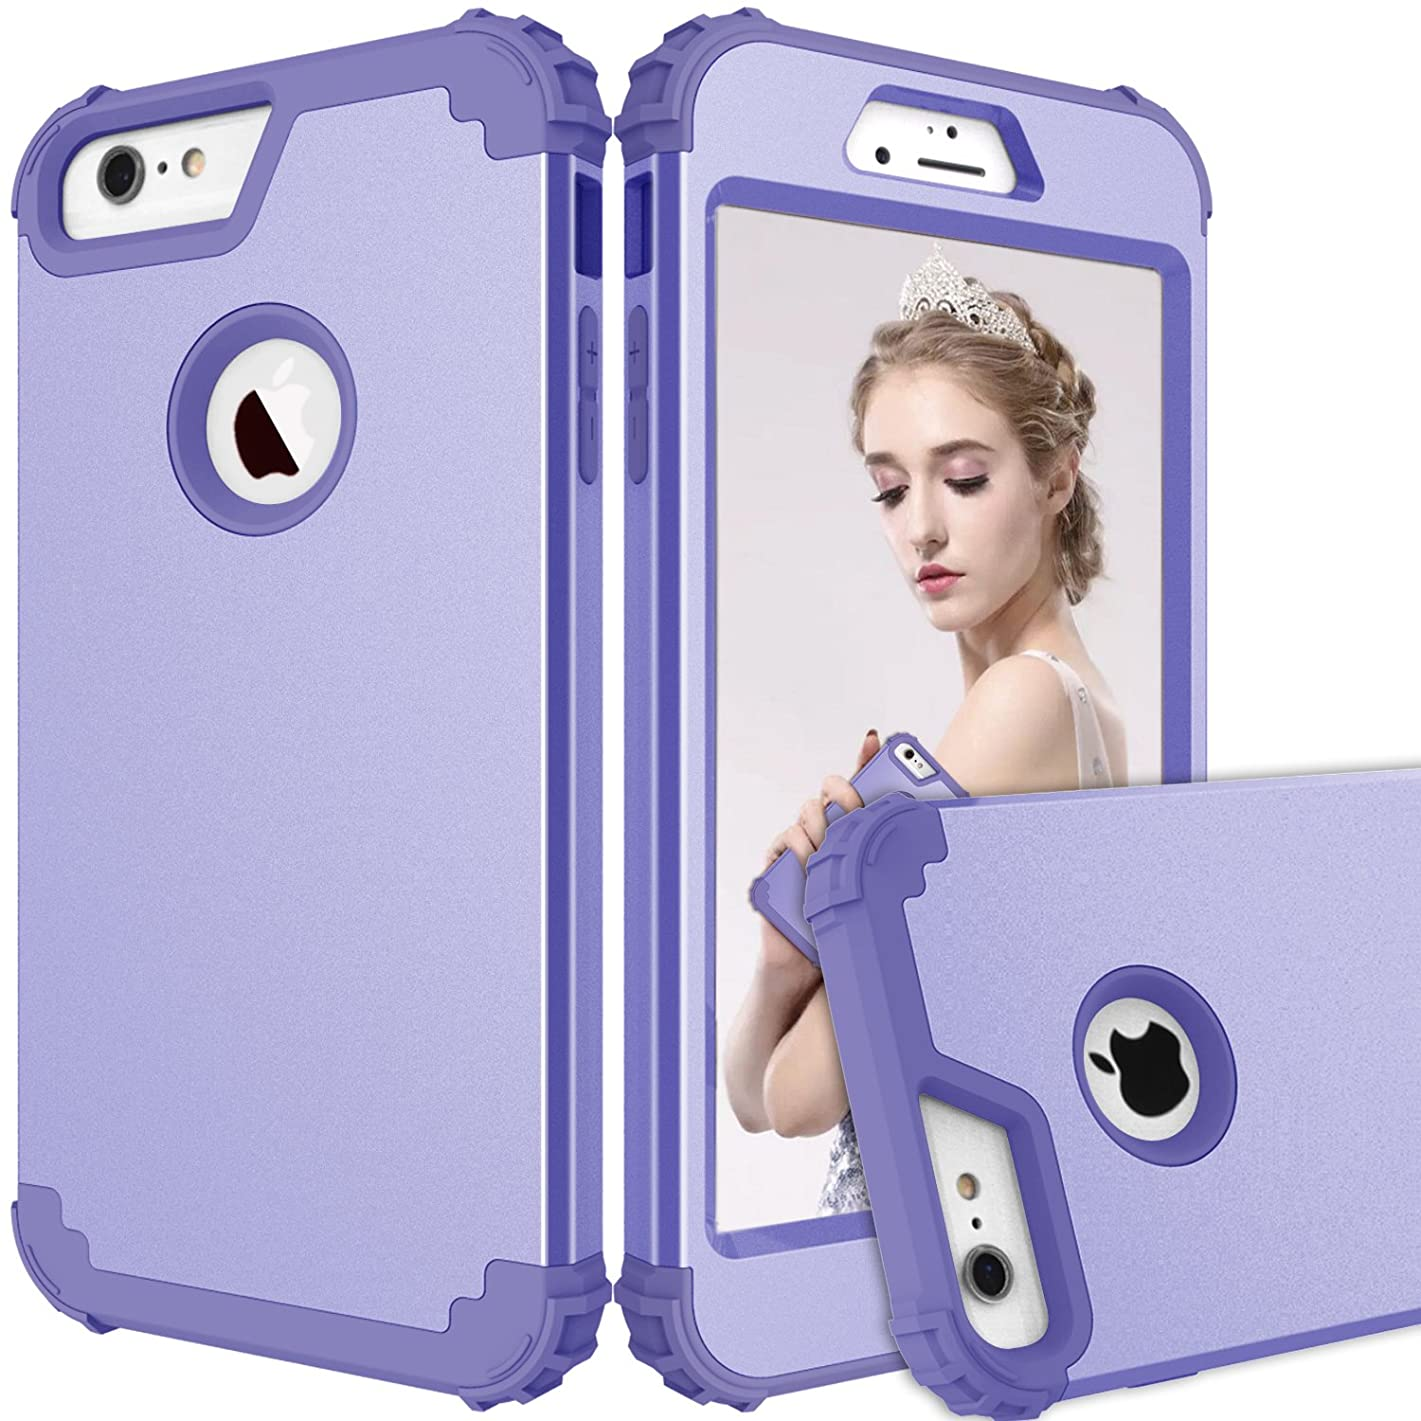 iPhone 6S Plus Case, iPhone 6 Plus Case, Dooge 3in1 Impact Heavy Duty Armor Defender Full-Body Shockproof Anti Slip Protective Cover with Silicone&Hard PC Bumper for iPhone 6 Plus/6s Plus Lavender